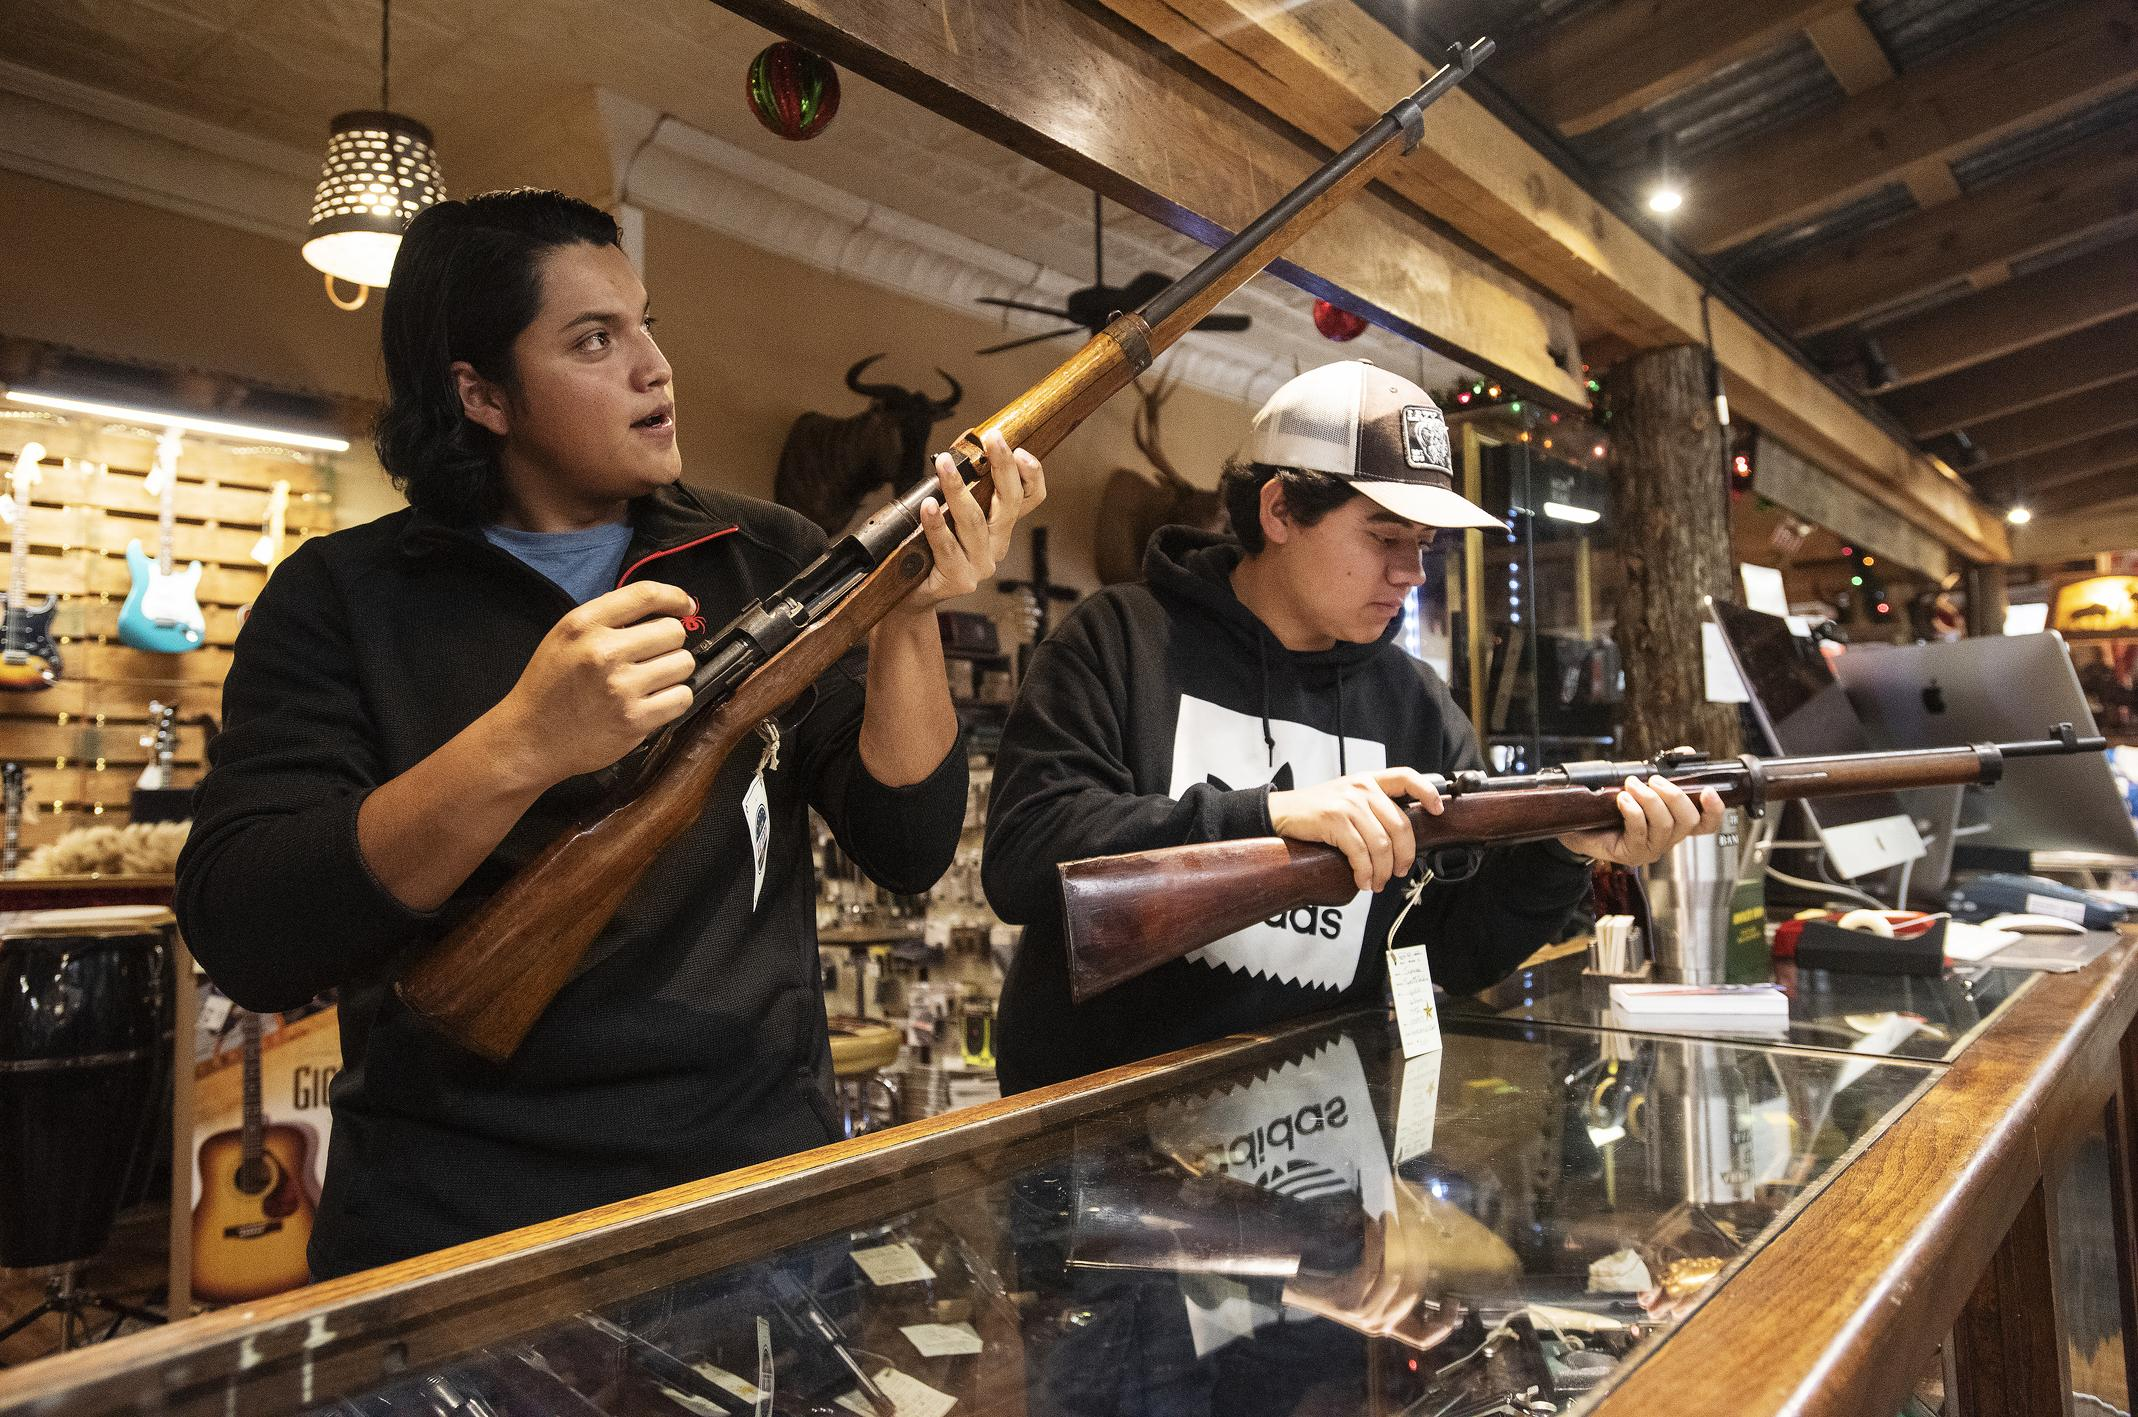 National gun sales reach record while new laws slow gun purchases ...